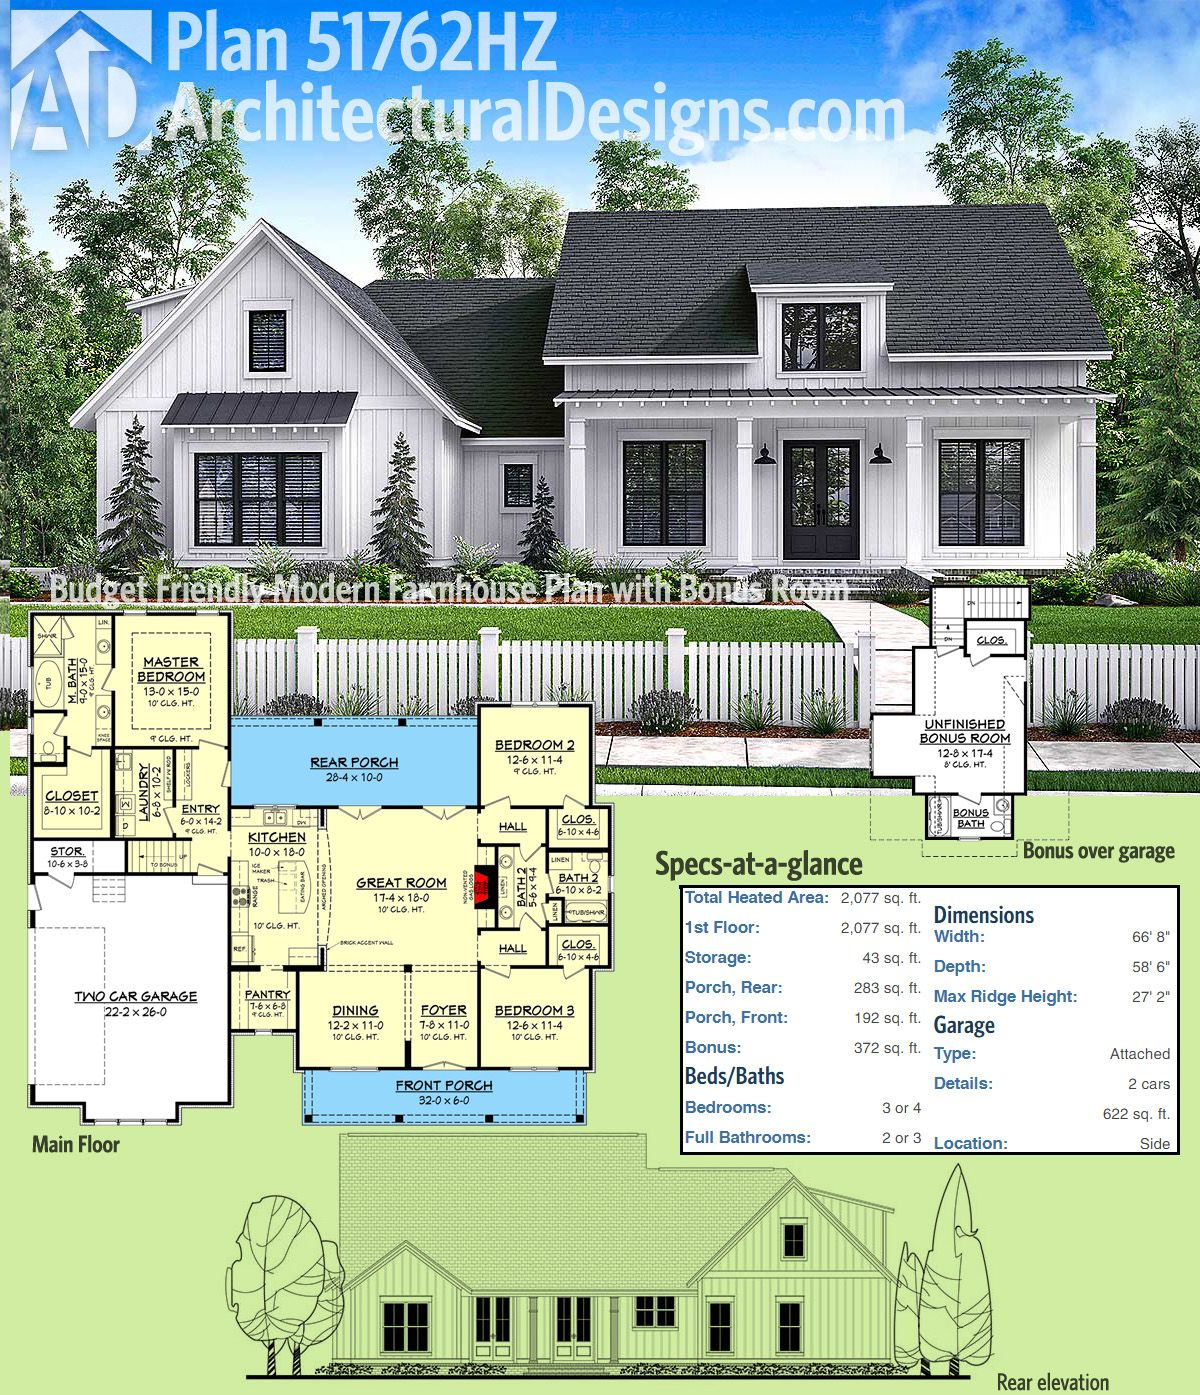 Plan 51762hz budget friendly modern farmhouse plan with for House plan with garage